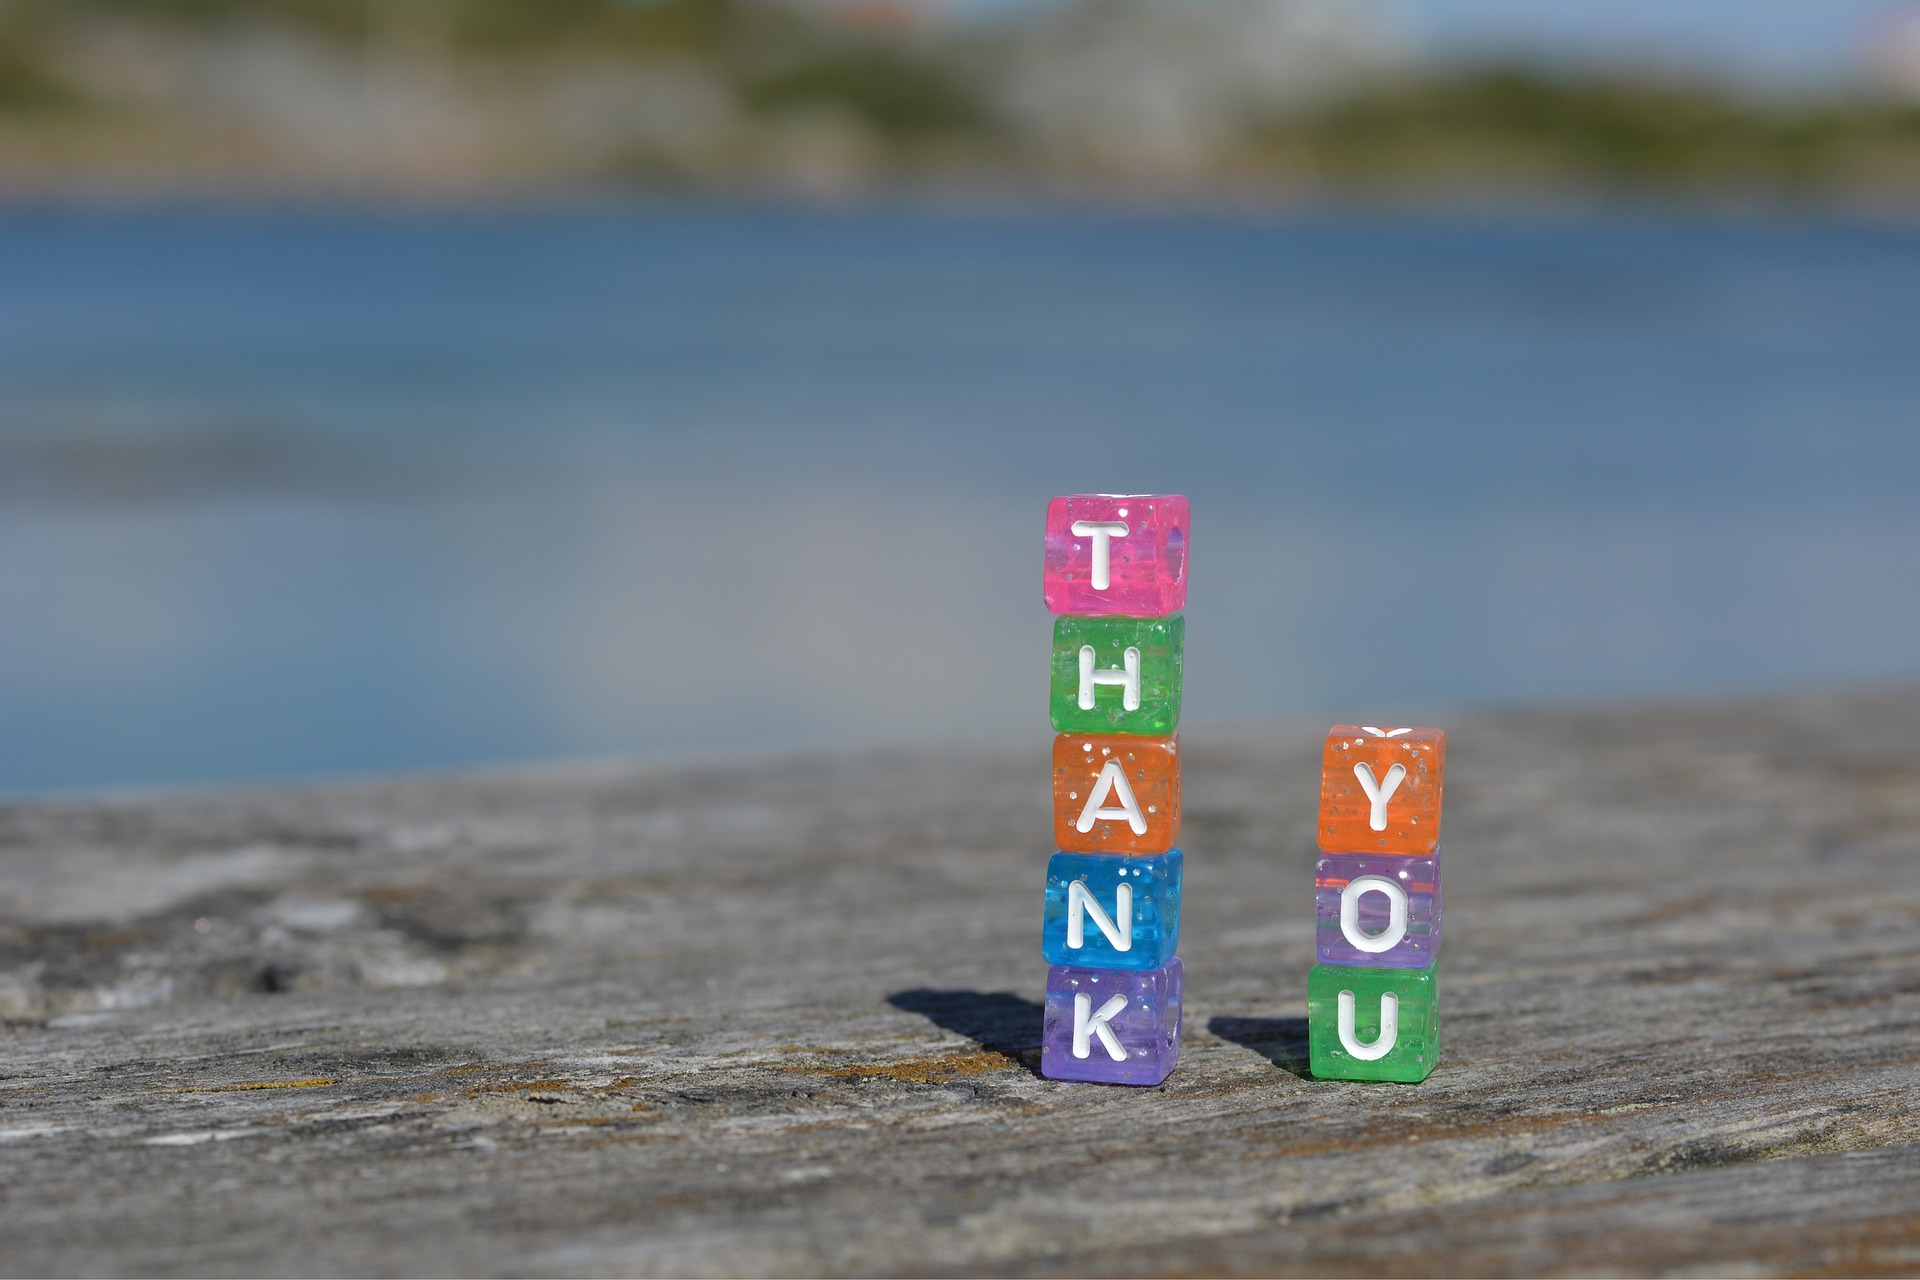 Gratitude: It's Critical for More Than Just Donor Relationships